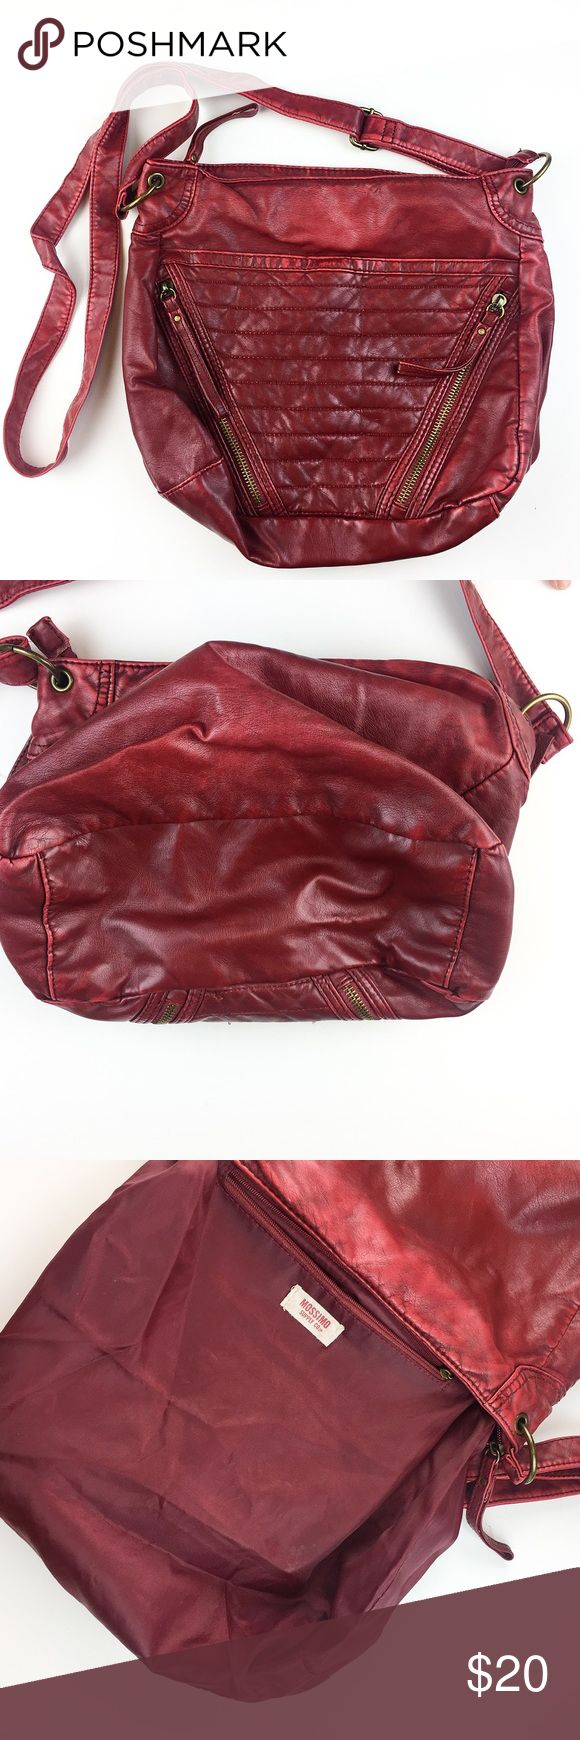 "Mossimo Red Crossbody Bag Boho Chic Small Bag Mossimo Red Crossbody Bag  Measurements: Length - 13"" laying flat Height - 10"" Shoulder strap to top of bag at longest length - 23""   Great condition, inside and out! HAPPY POSHING! Mossimo Supply Co. Bags Crossbody Bags"